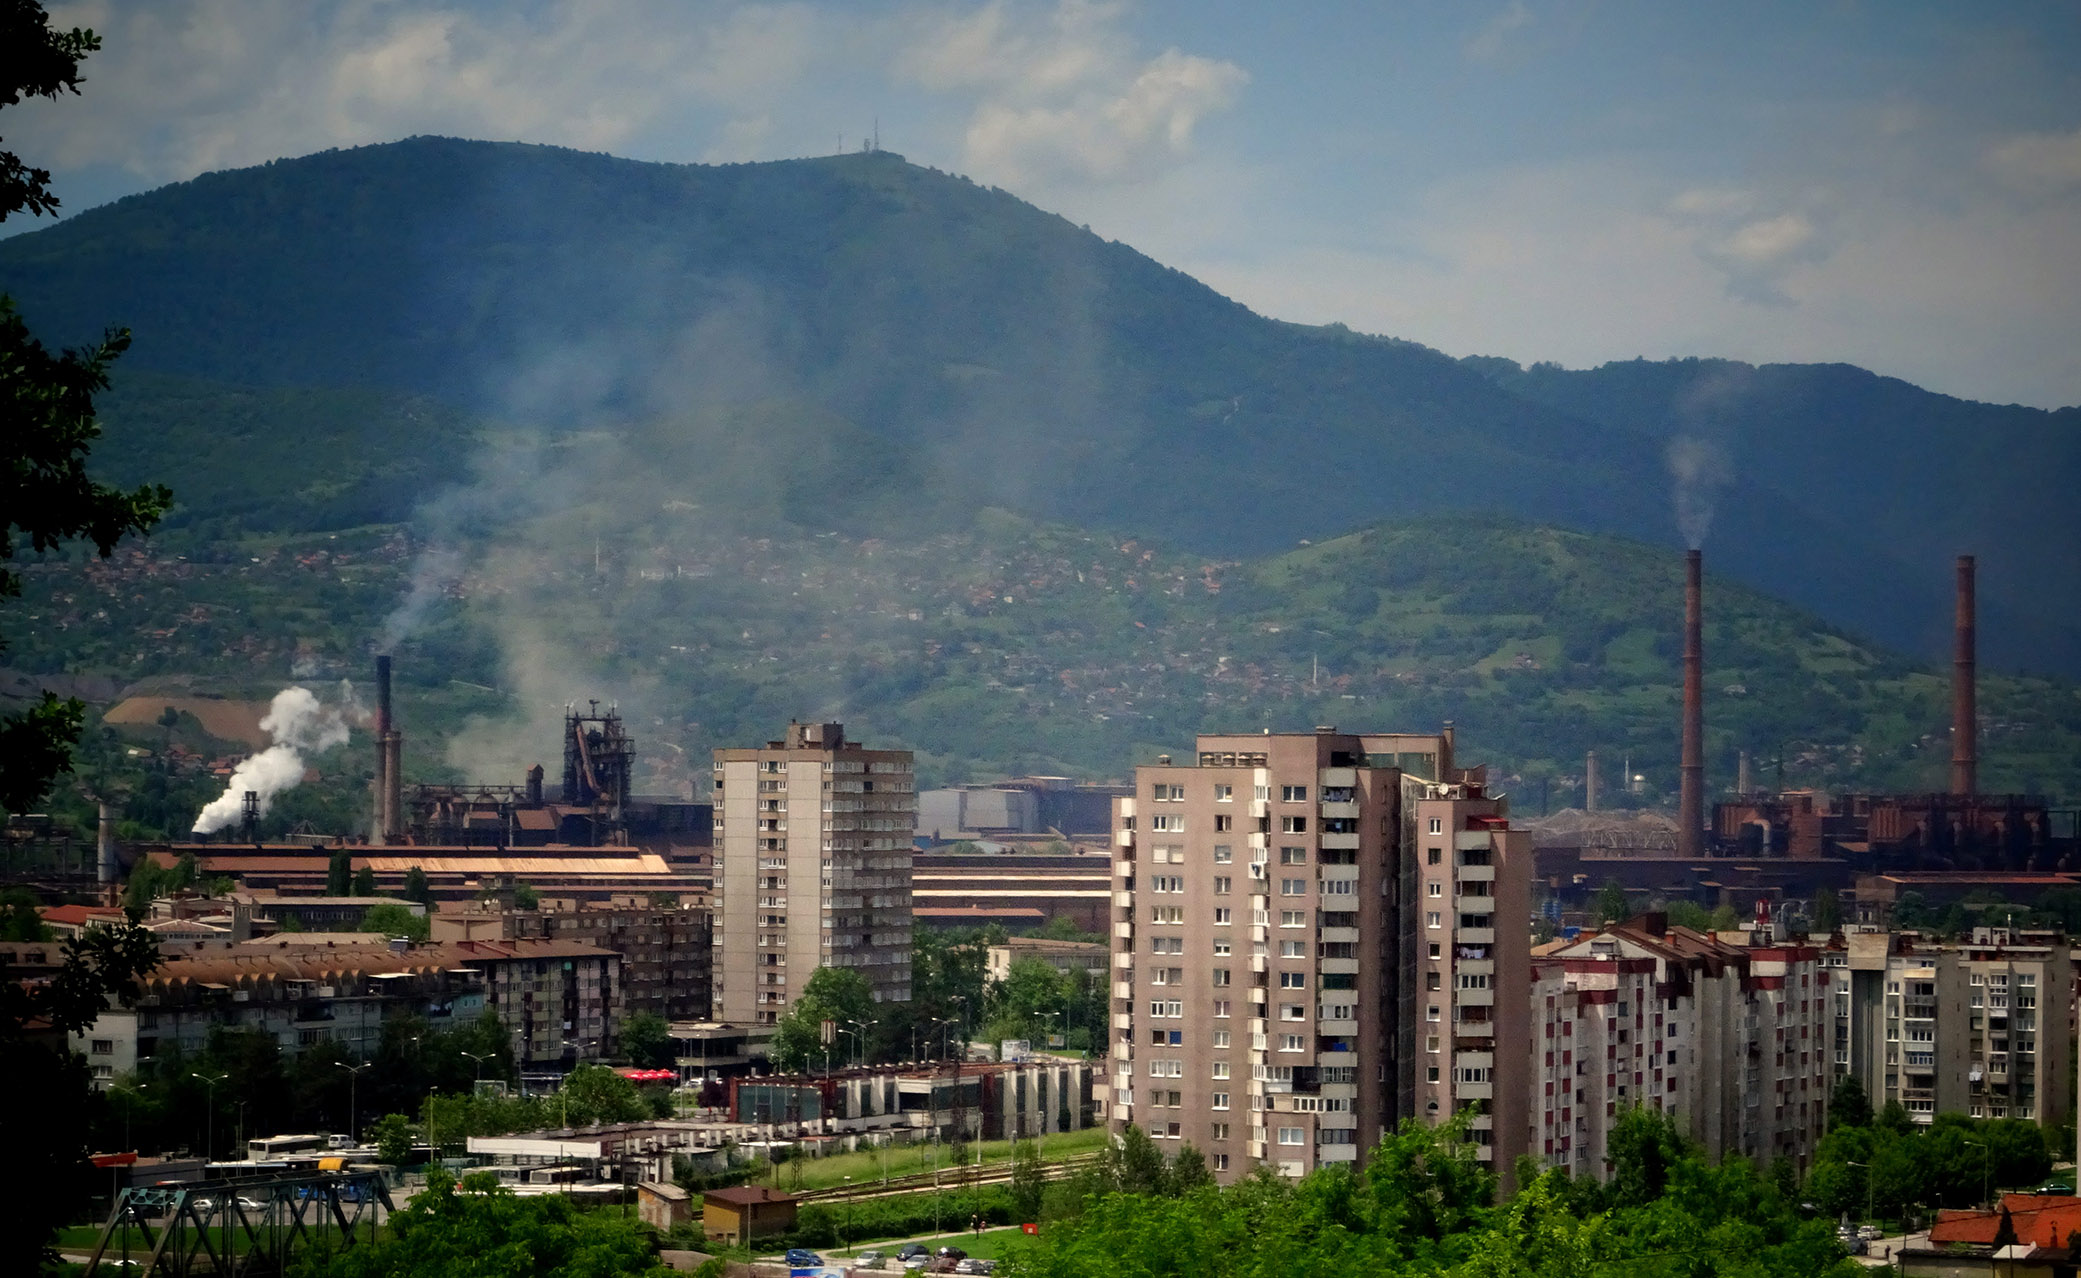 Zenica (photo by M. Ranocchiari)